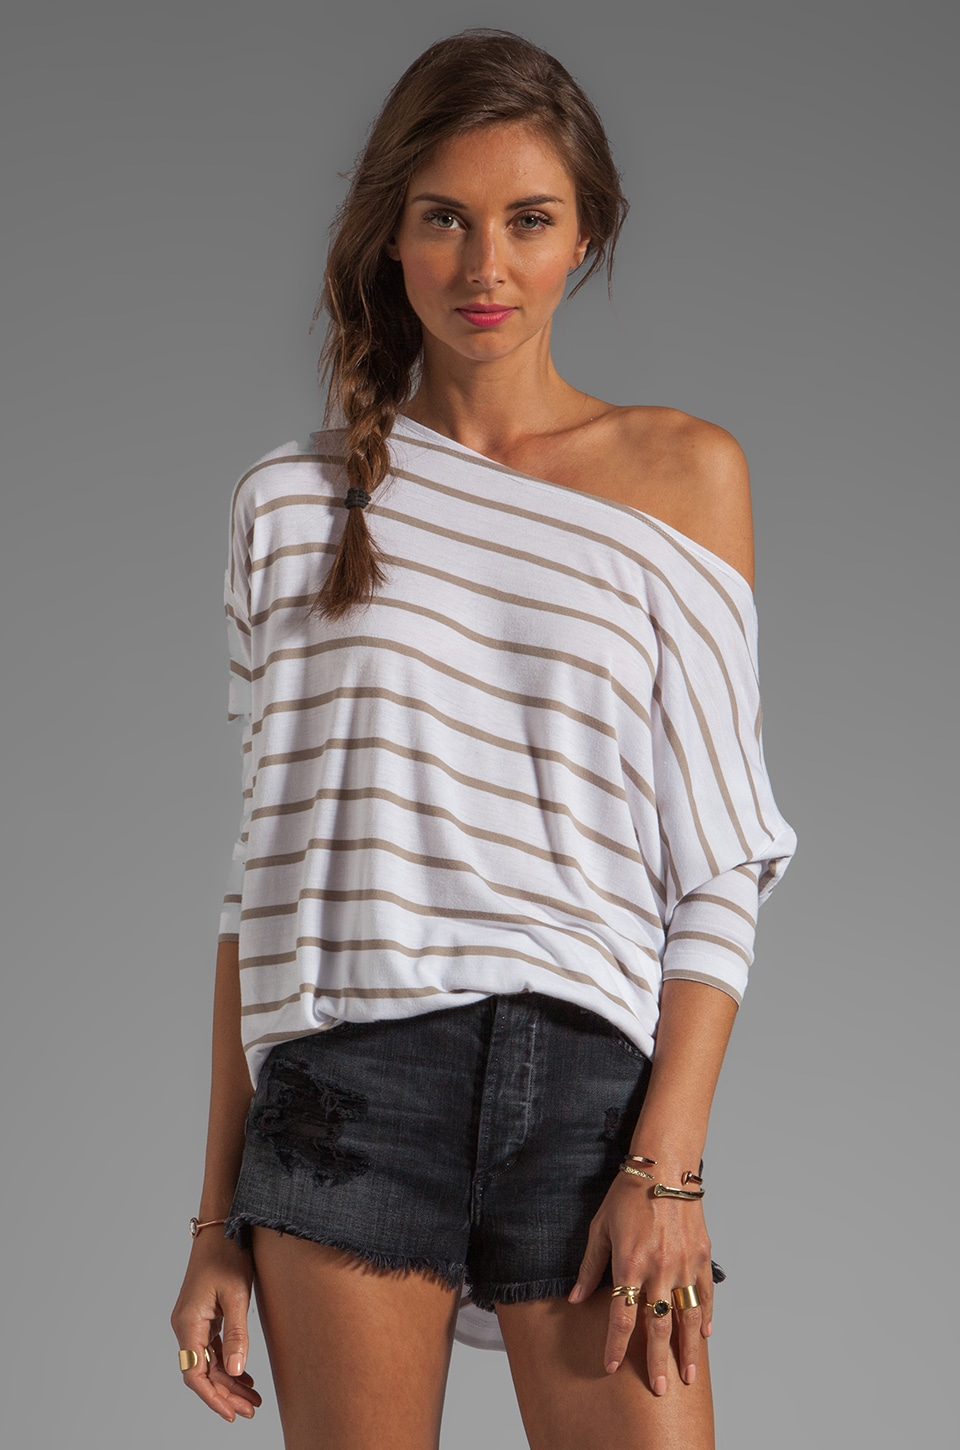 BCBGMAXAZRIA Striped Top in White/Hazelnut Combo